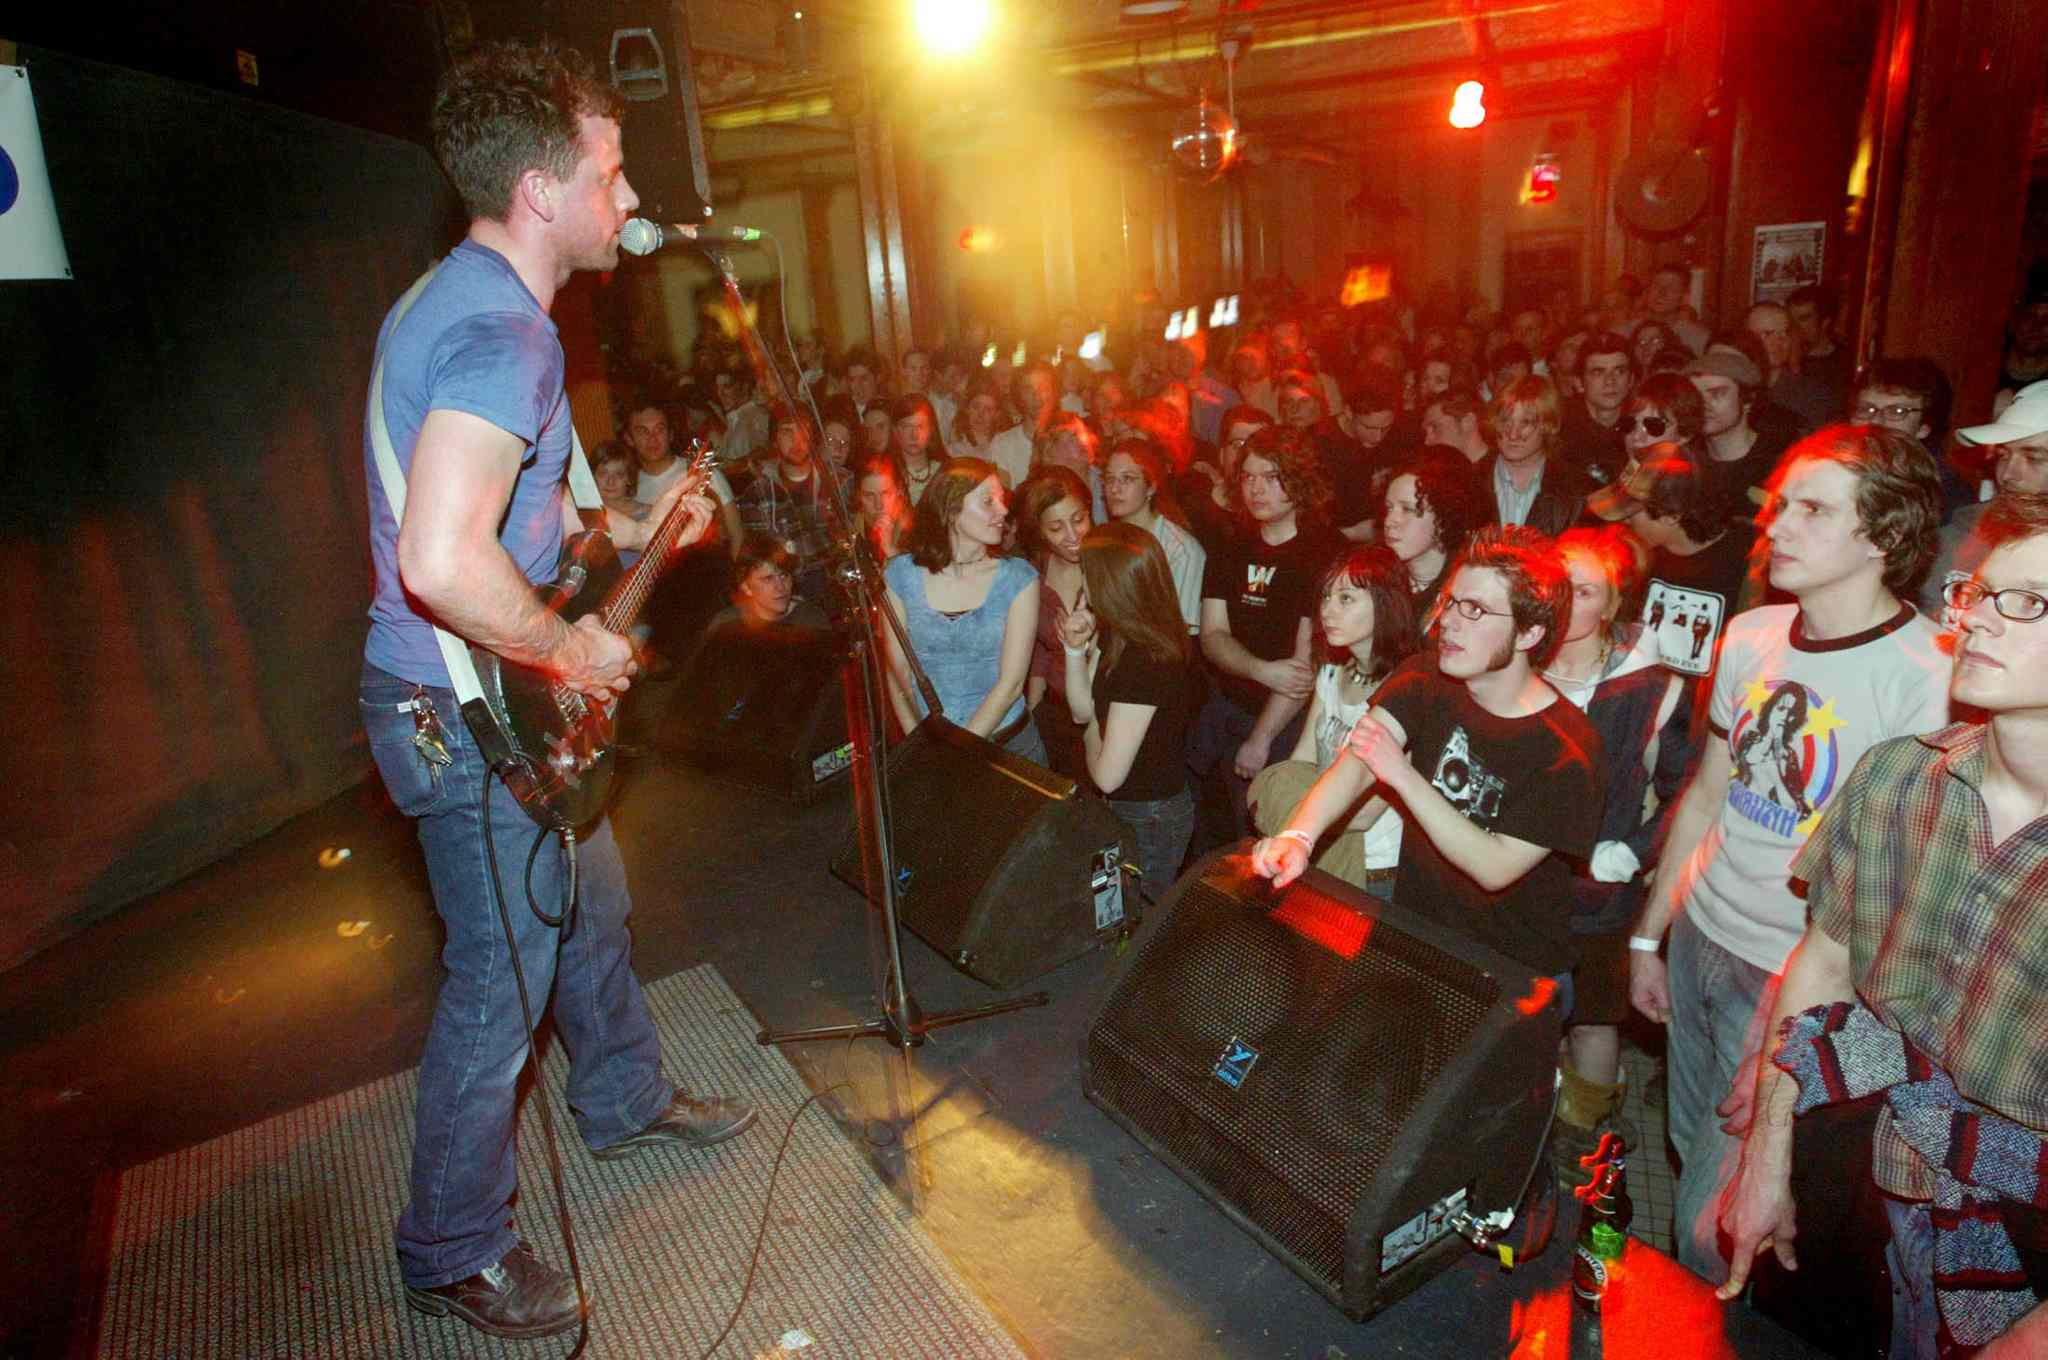 Greg MacPherson performs to a packed house at the Royal Albert Arms during Junofest in 2005.